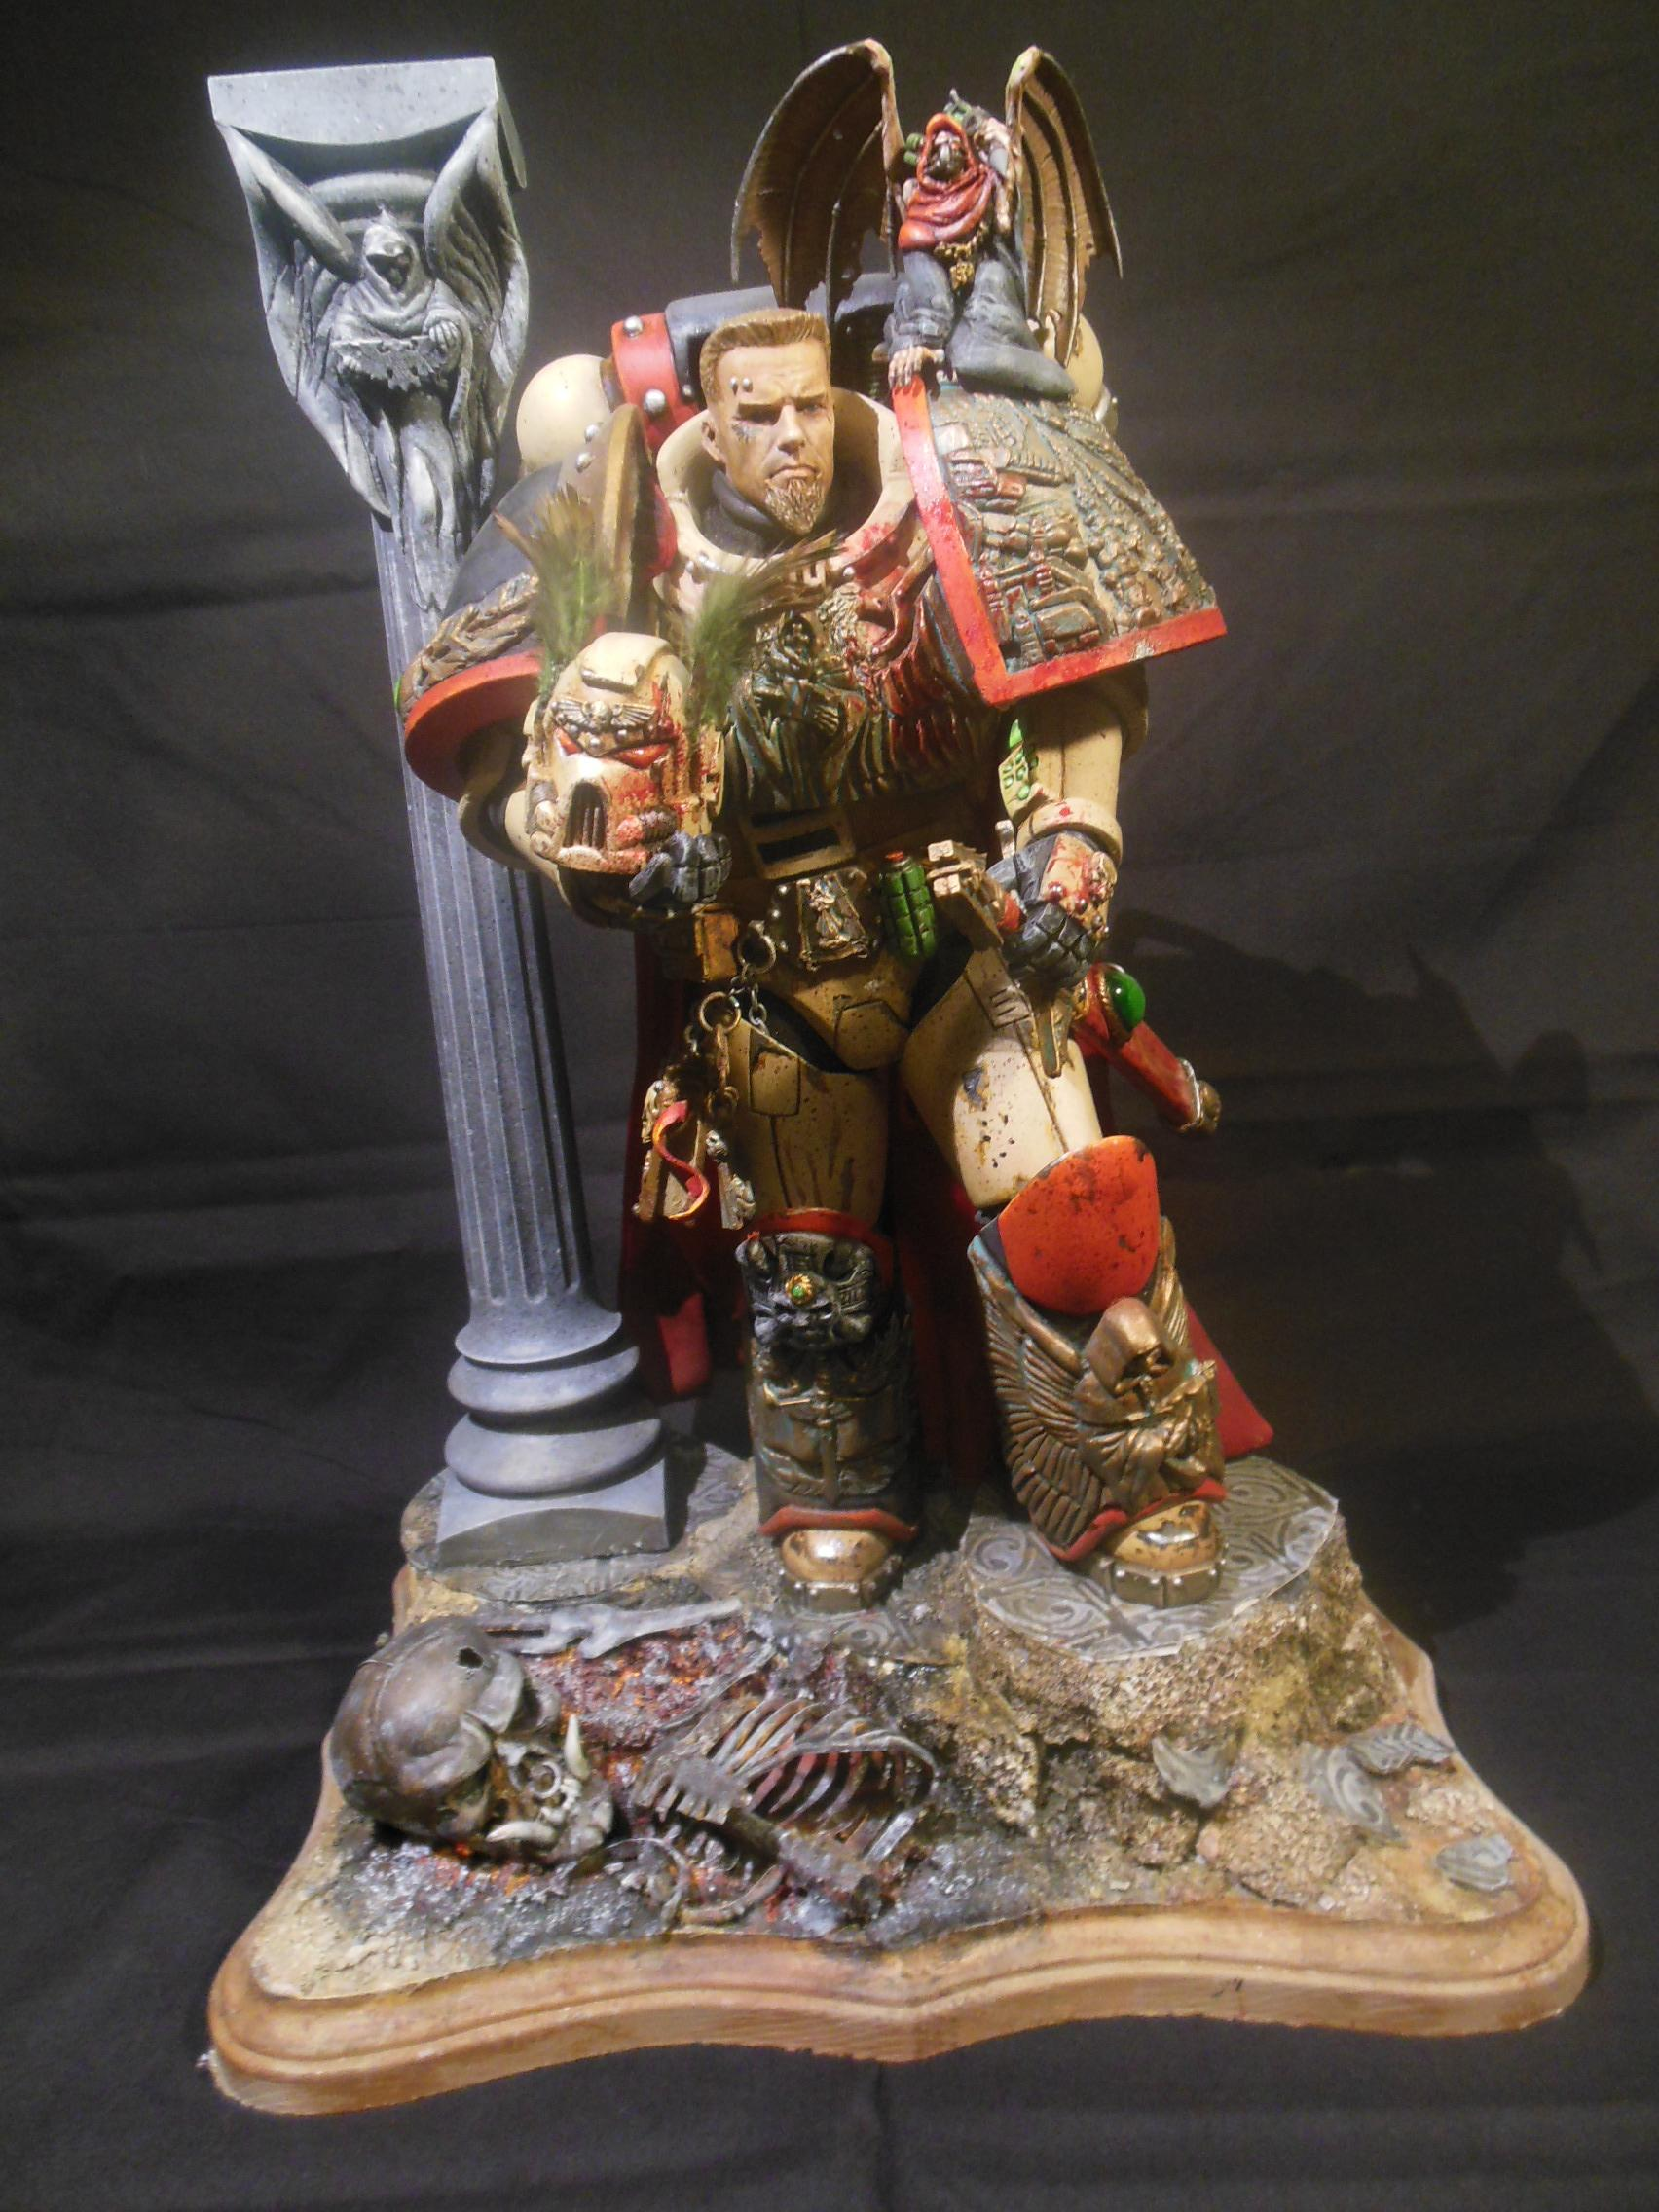 12 Inch, Action Figure, Custom, Doll, Giant, Large, Scratch Build, Space Marines